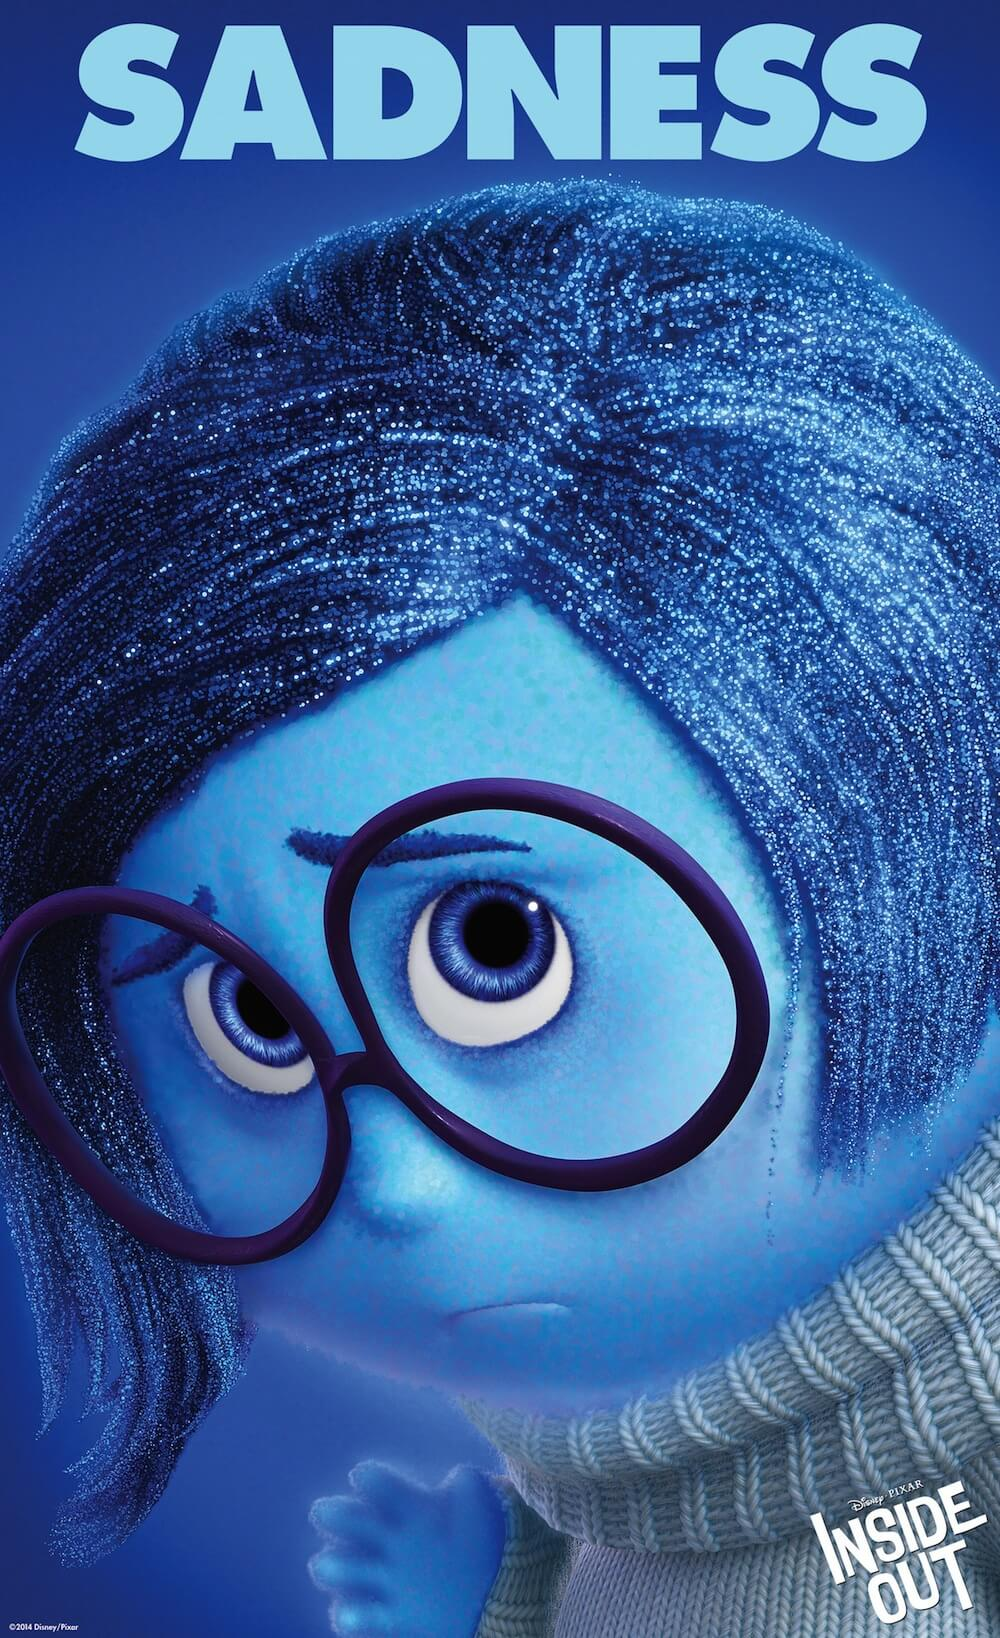 Inside out is a Disney Movie about 5 major emotions in a person. The poster has Sadness, the blue girl with big round glasses. Sharing this for Jayanthy's Free Space post on Emotions in times of Corona.